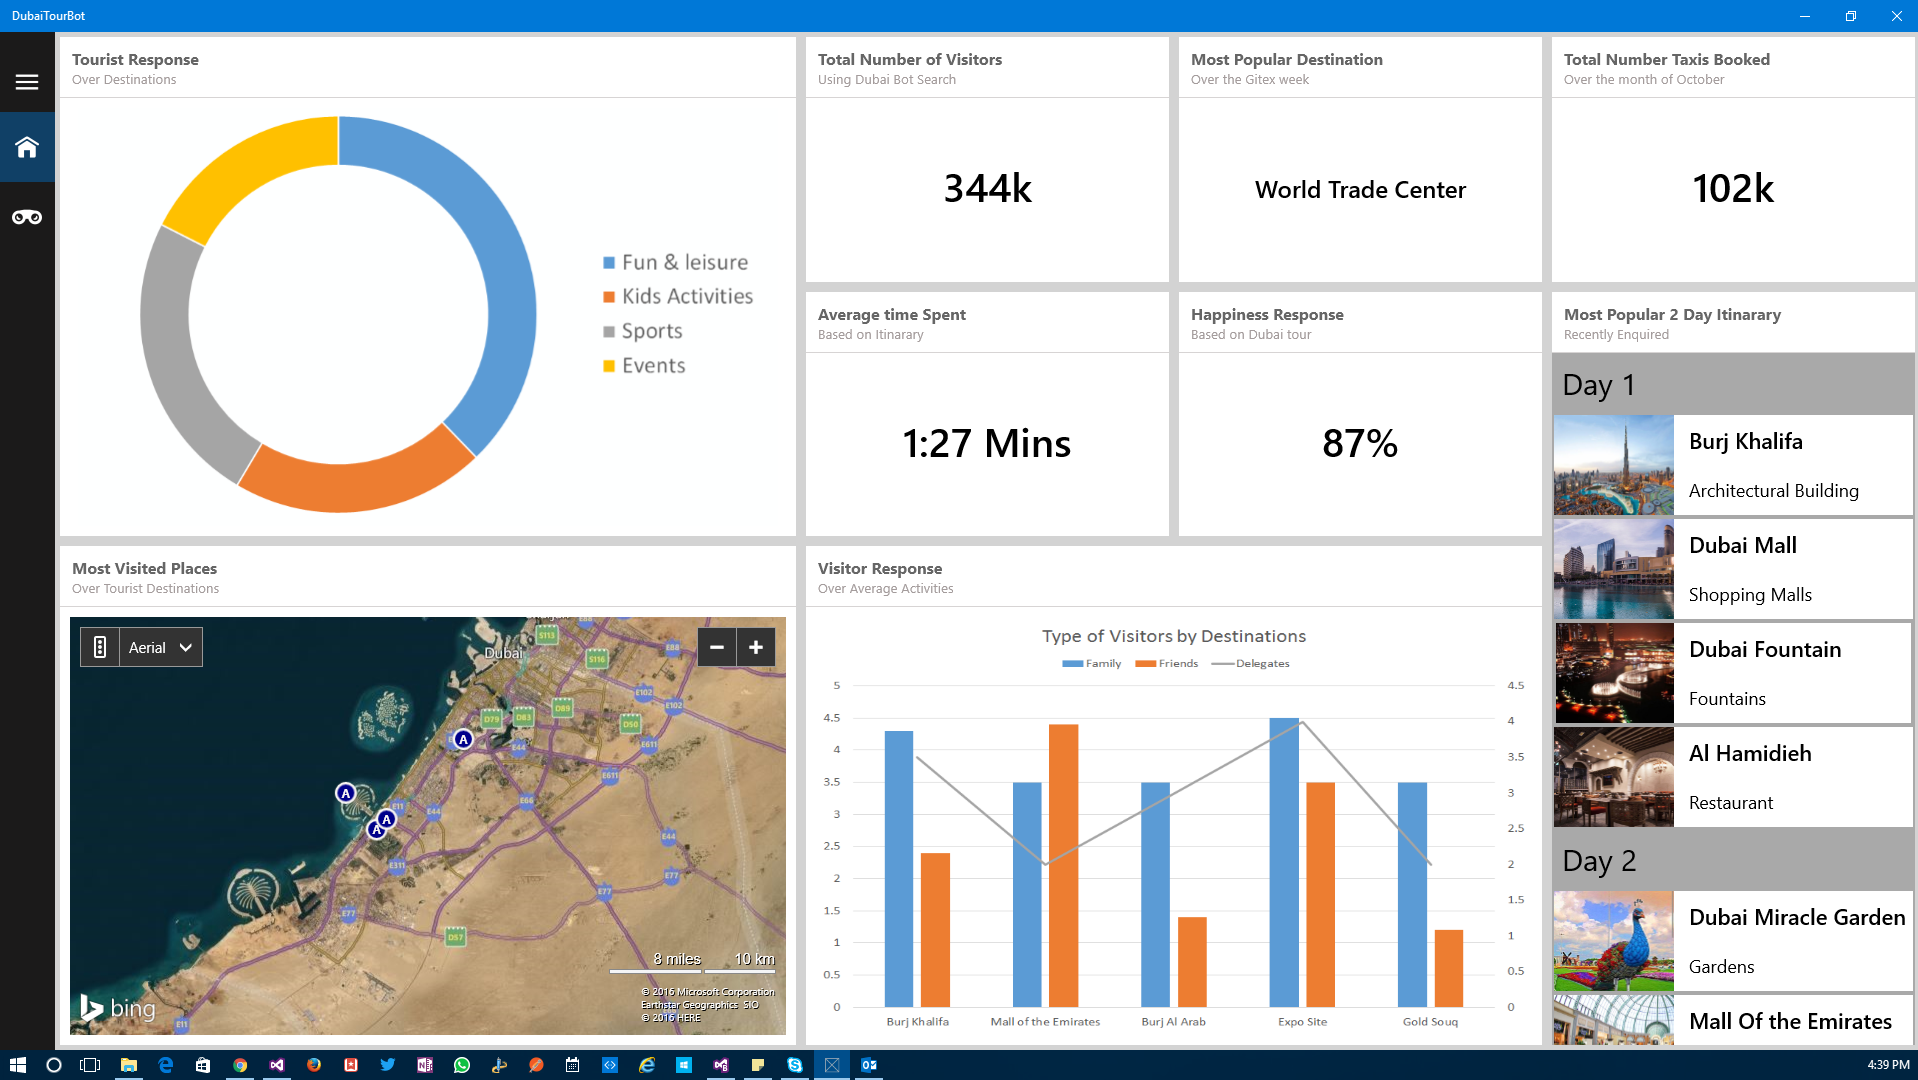 Microsoft presents virtual tour guide Dubai Bot at Gitex 2016